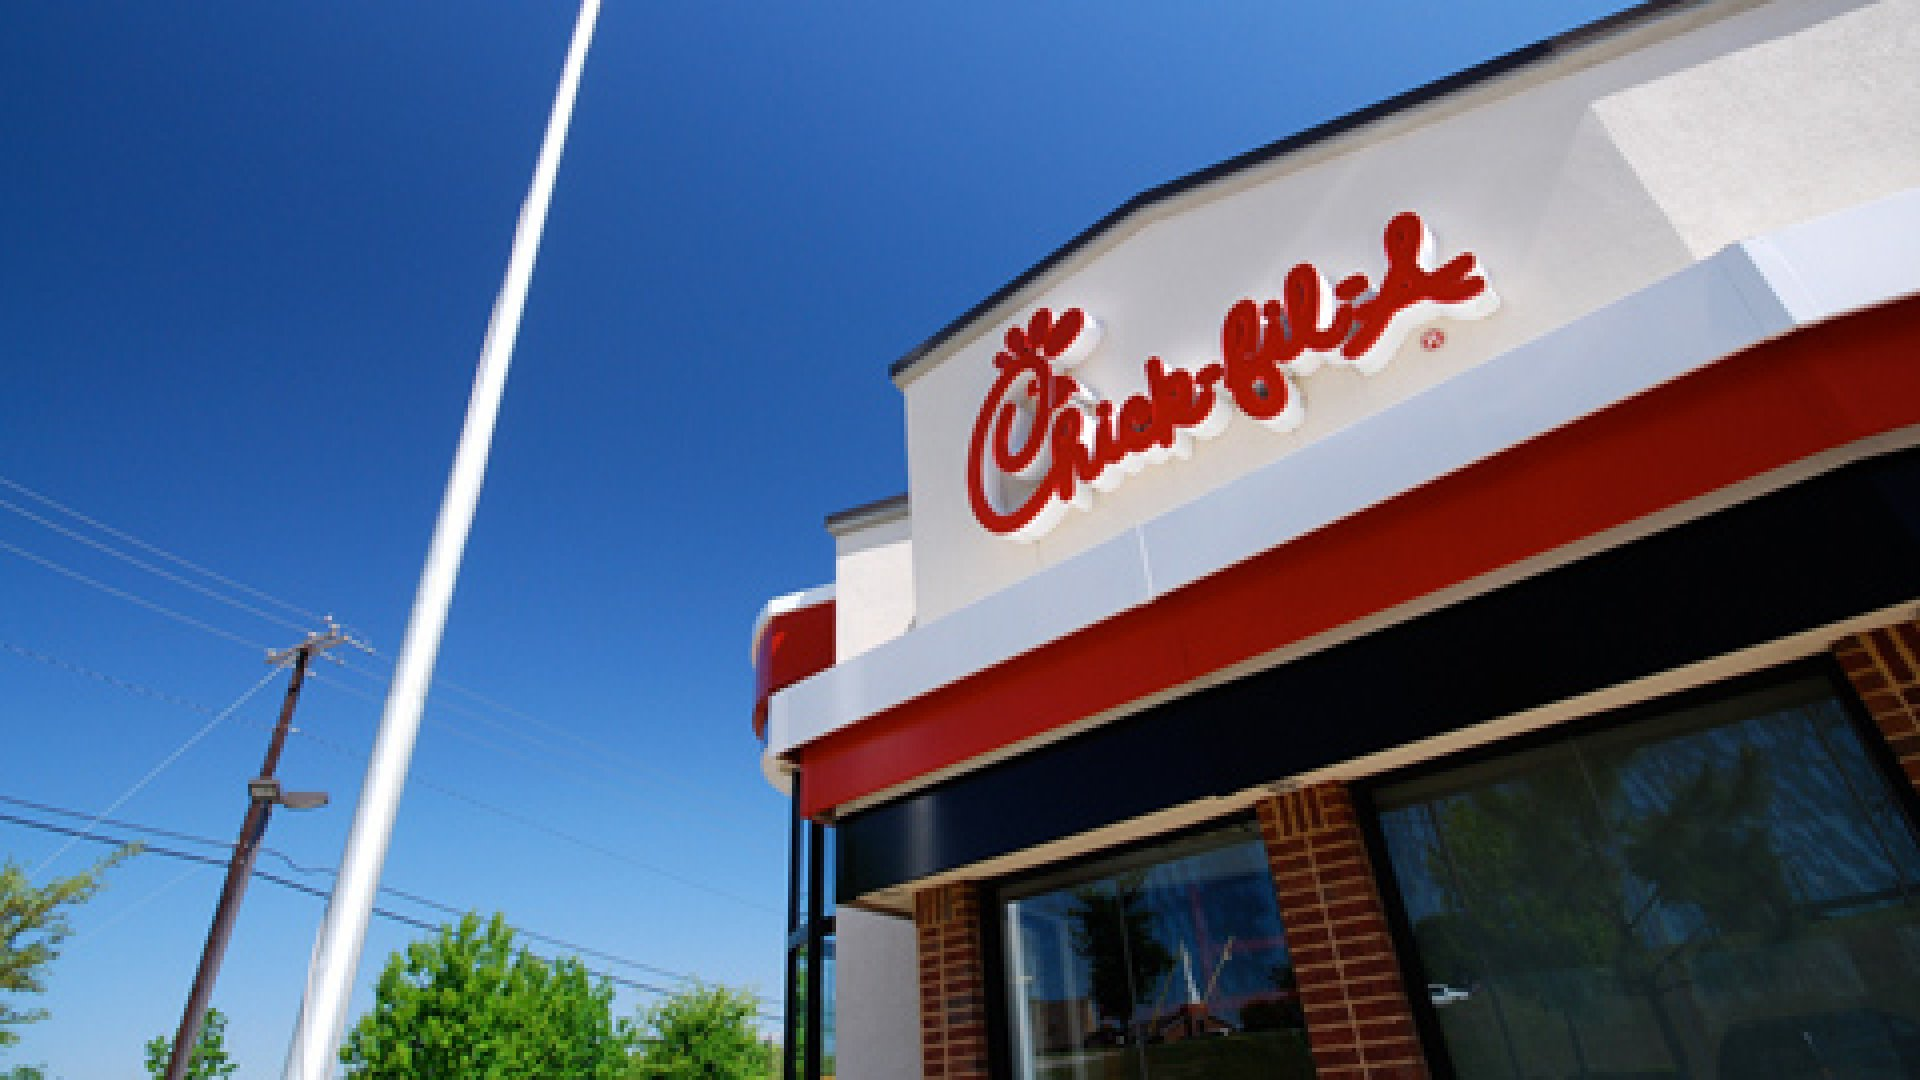 5 PR Lessons From the Chick-fil-A Crisis